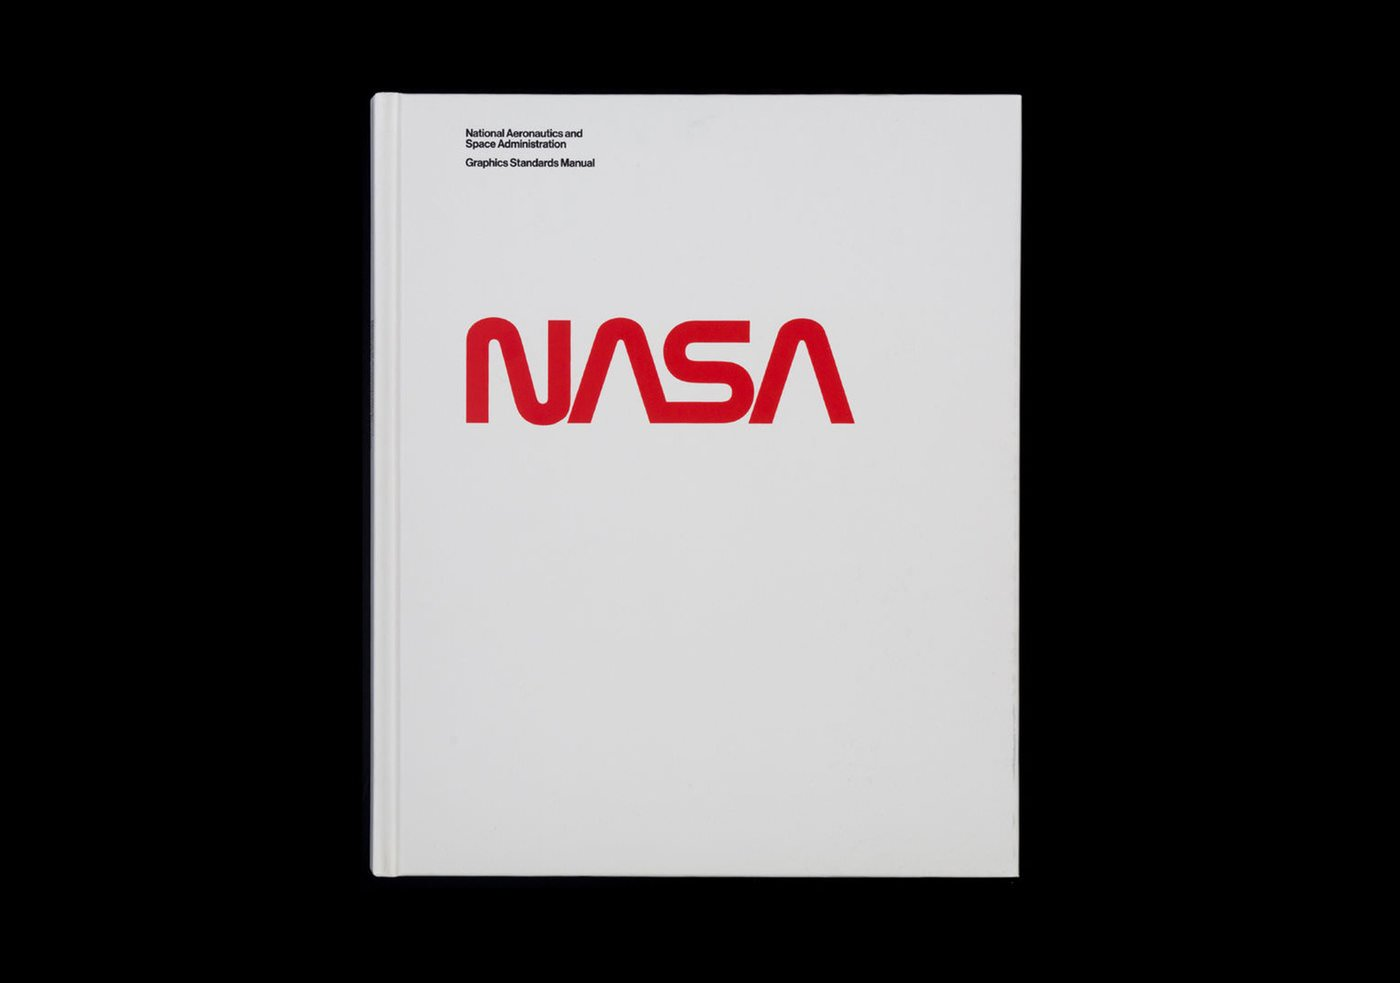 nasa-graphics-standards-manual